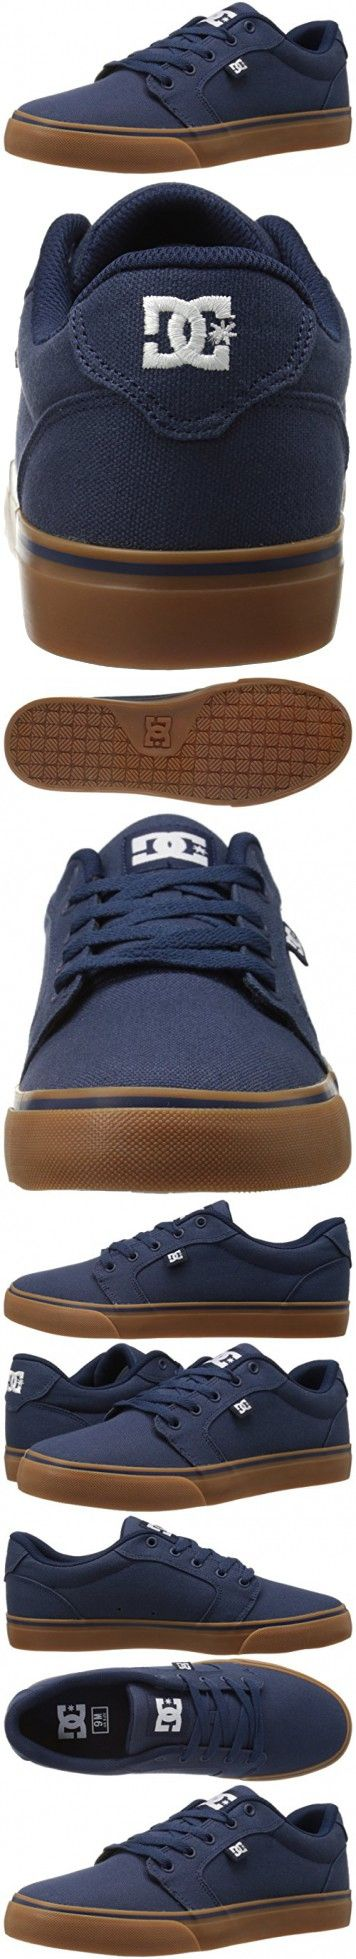 DC Men's Anvil TX Skate Shoe, Navy/Gum, 11 M US